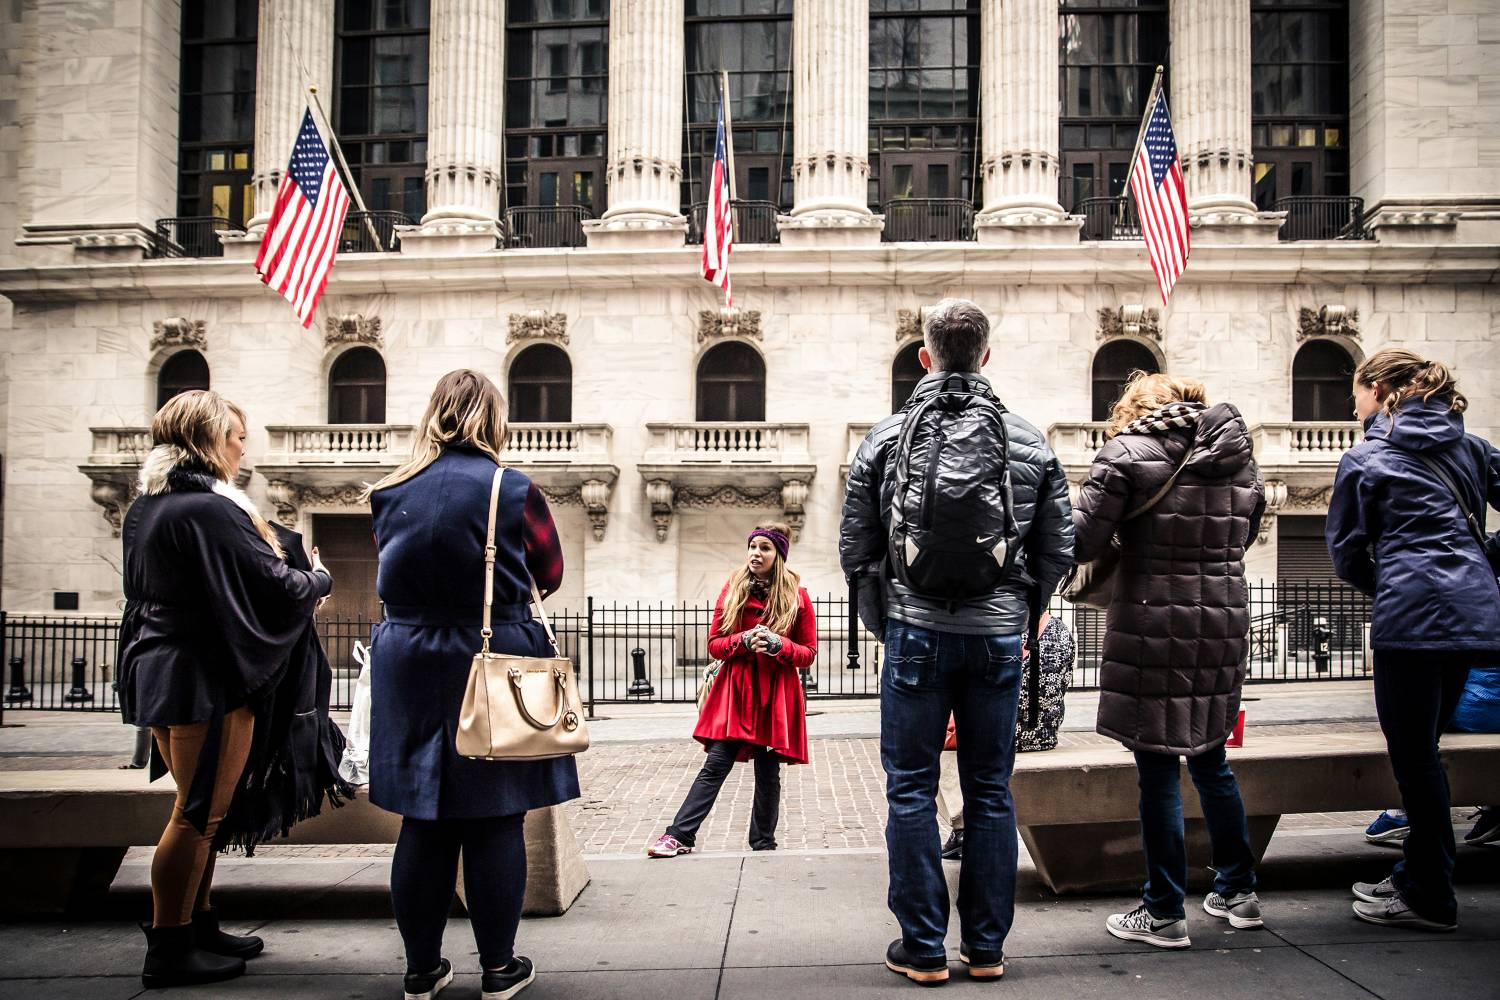 touring wall street on the The Wall Street Experience